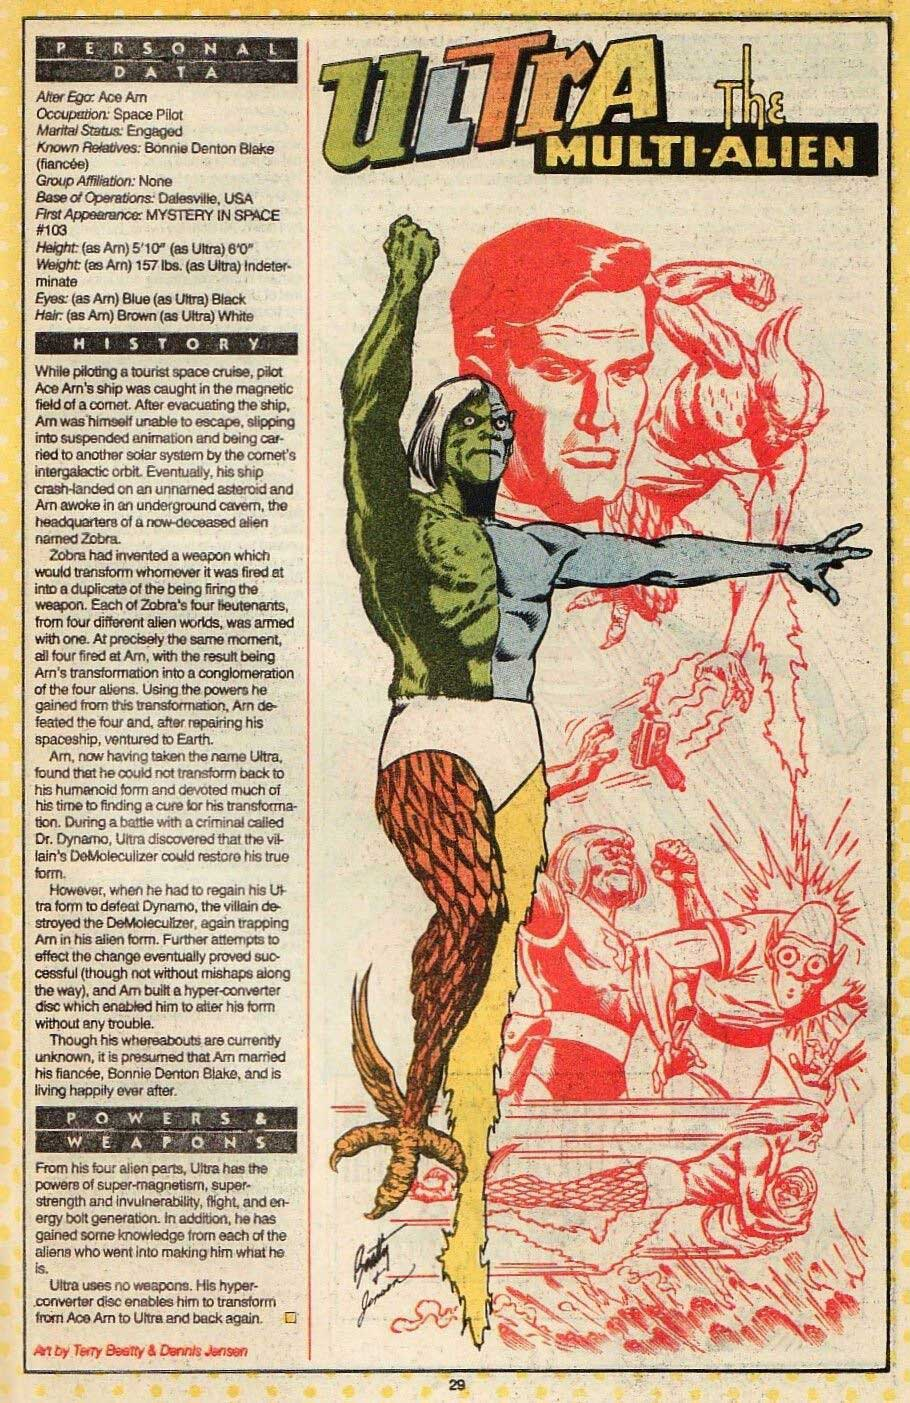 Who's Who: The Definitive Directory of the DC Universe #24 (1987) drawn by Terry Beatty and Dennis Jensen